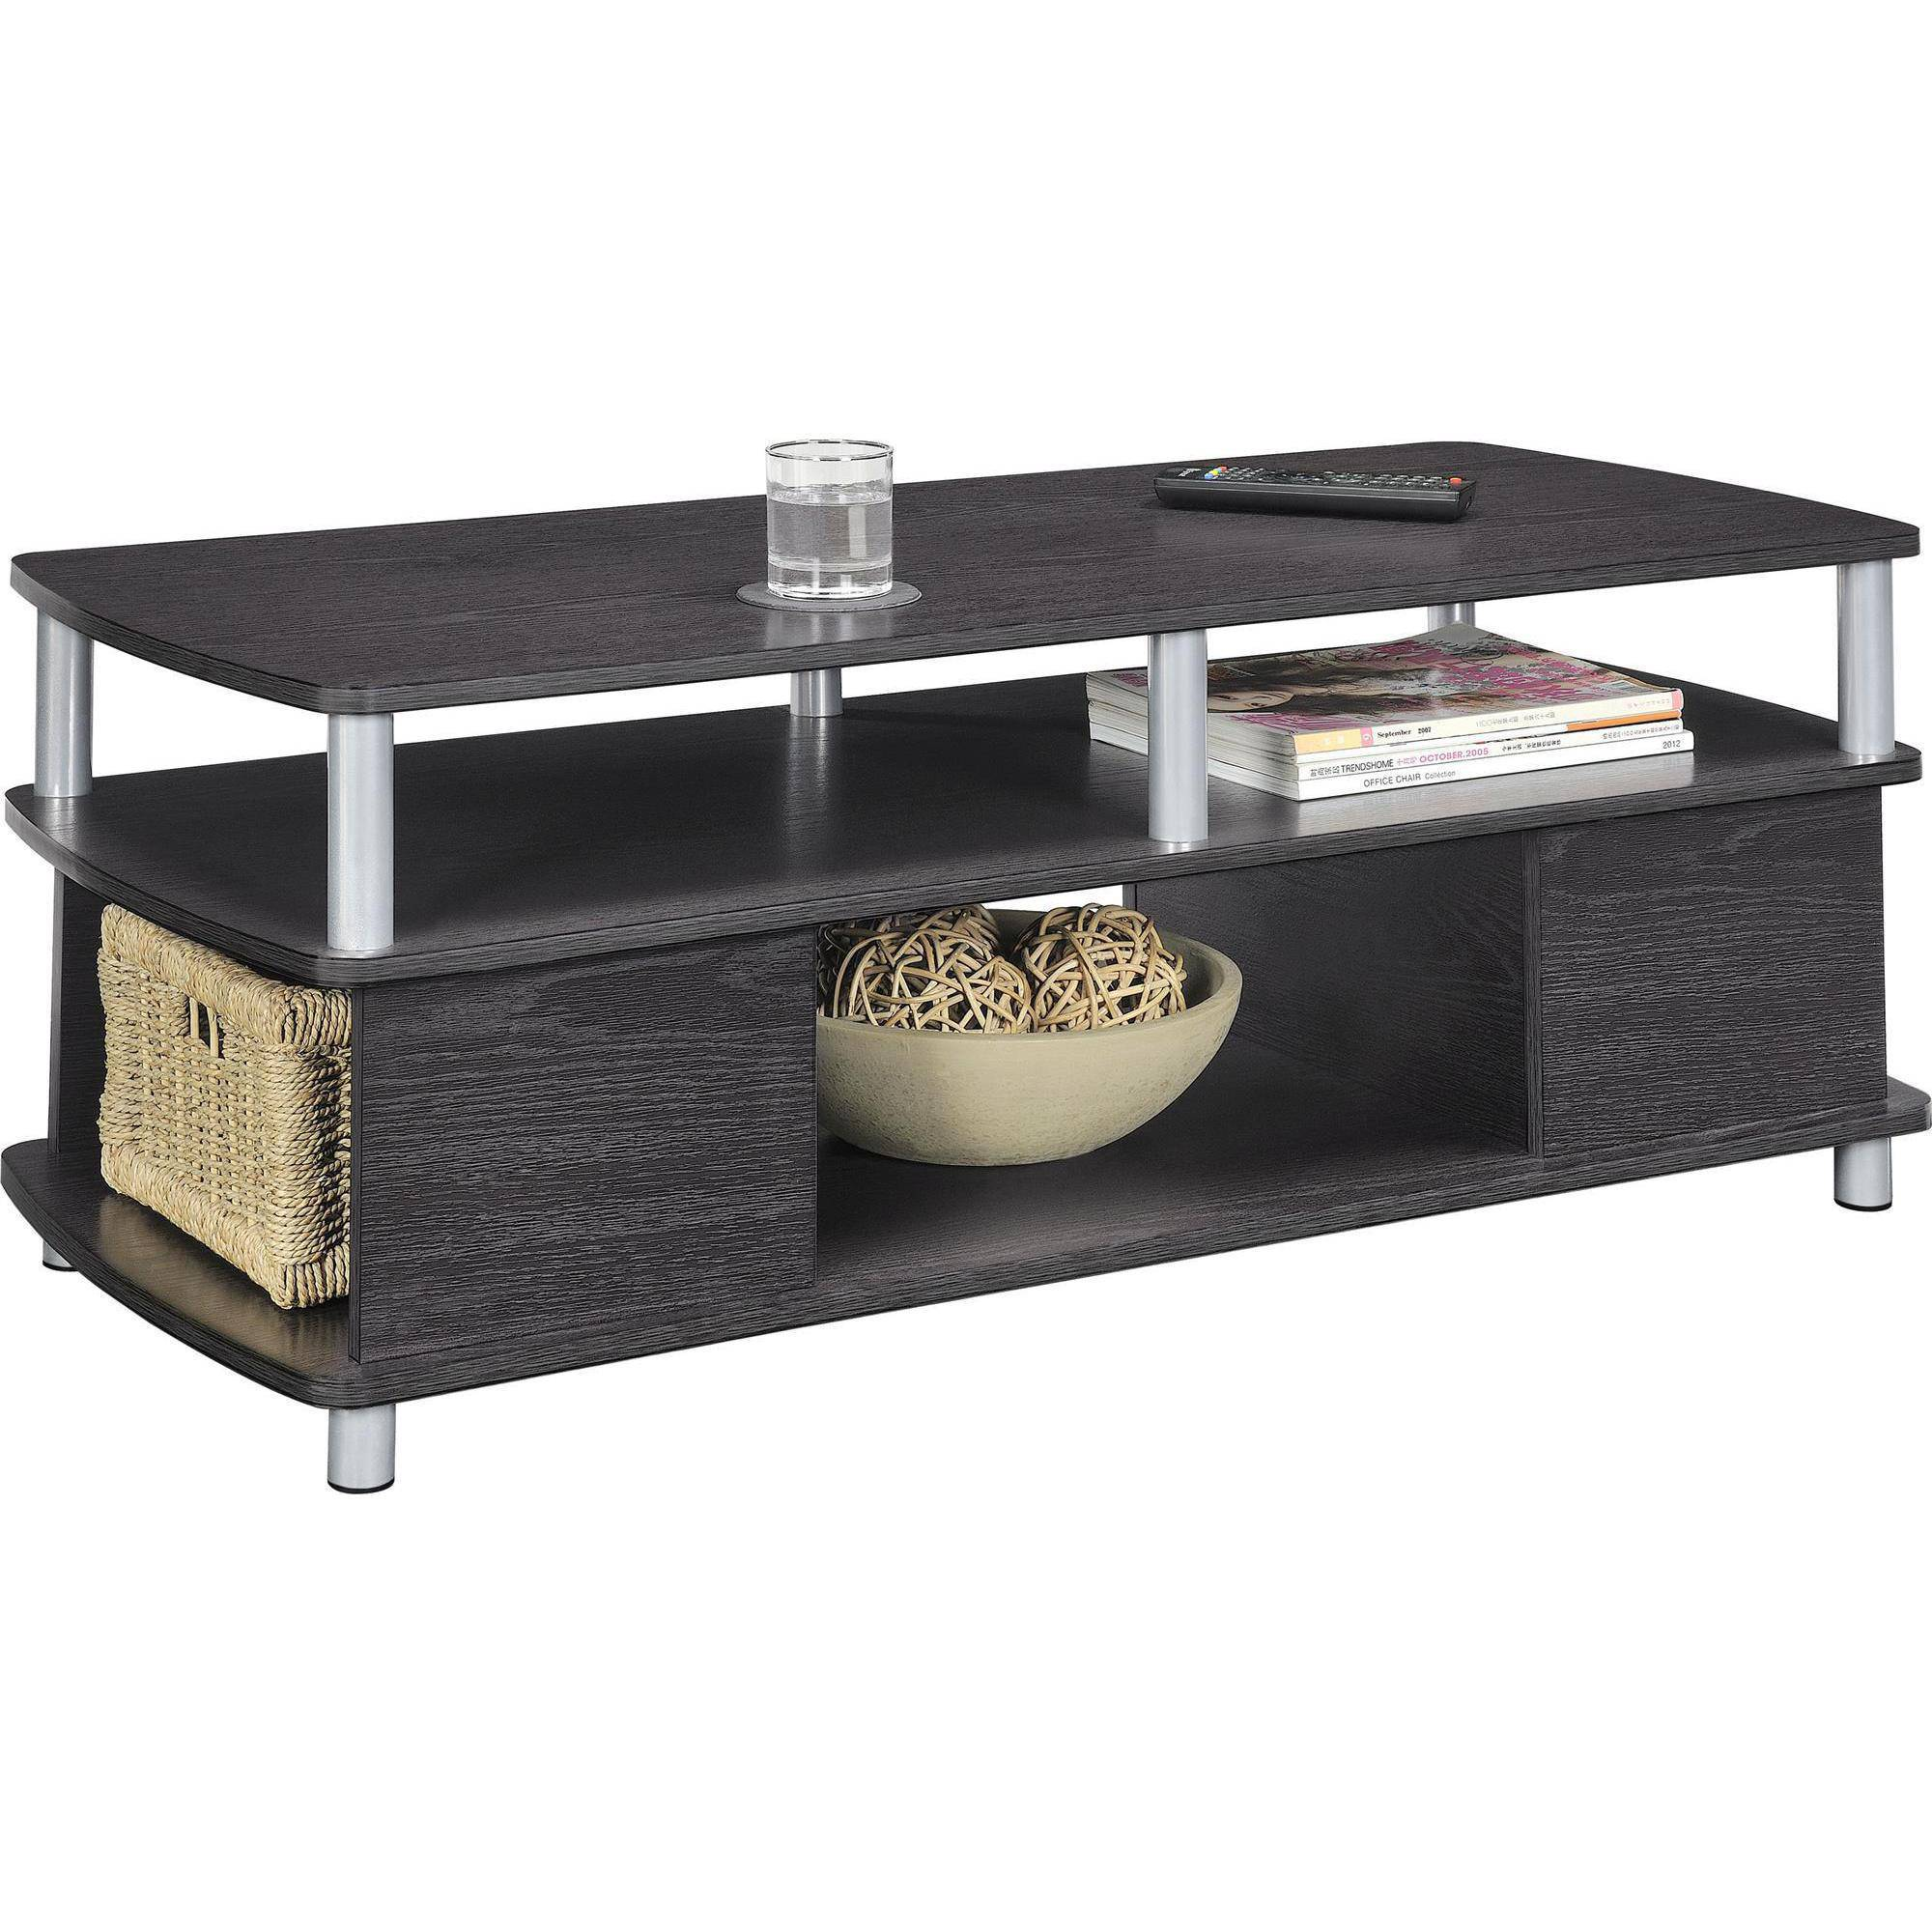 Modern Wood Coffee Table: Home Coffee Table Wood Living Room Furniture Modern Shelf